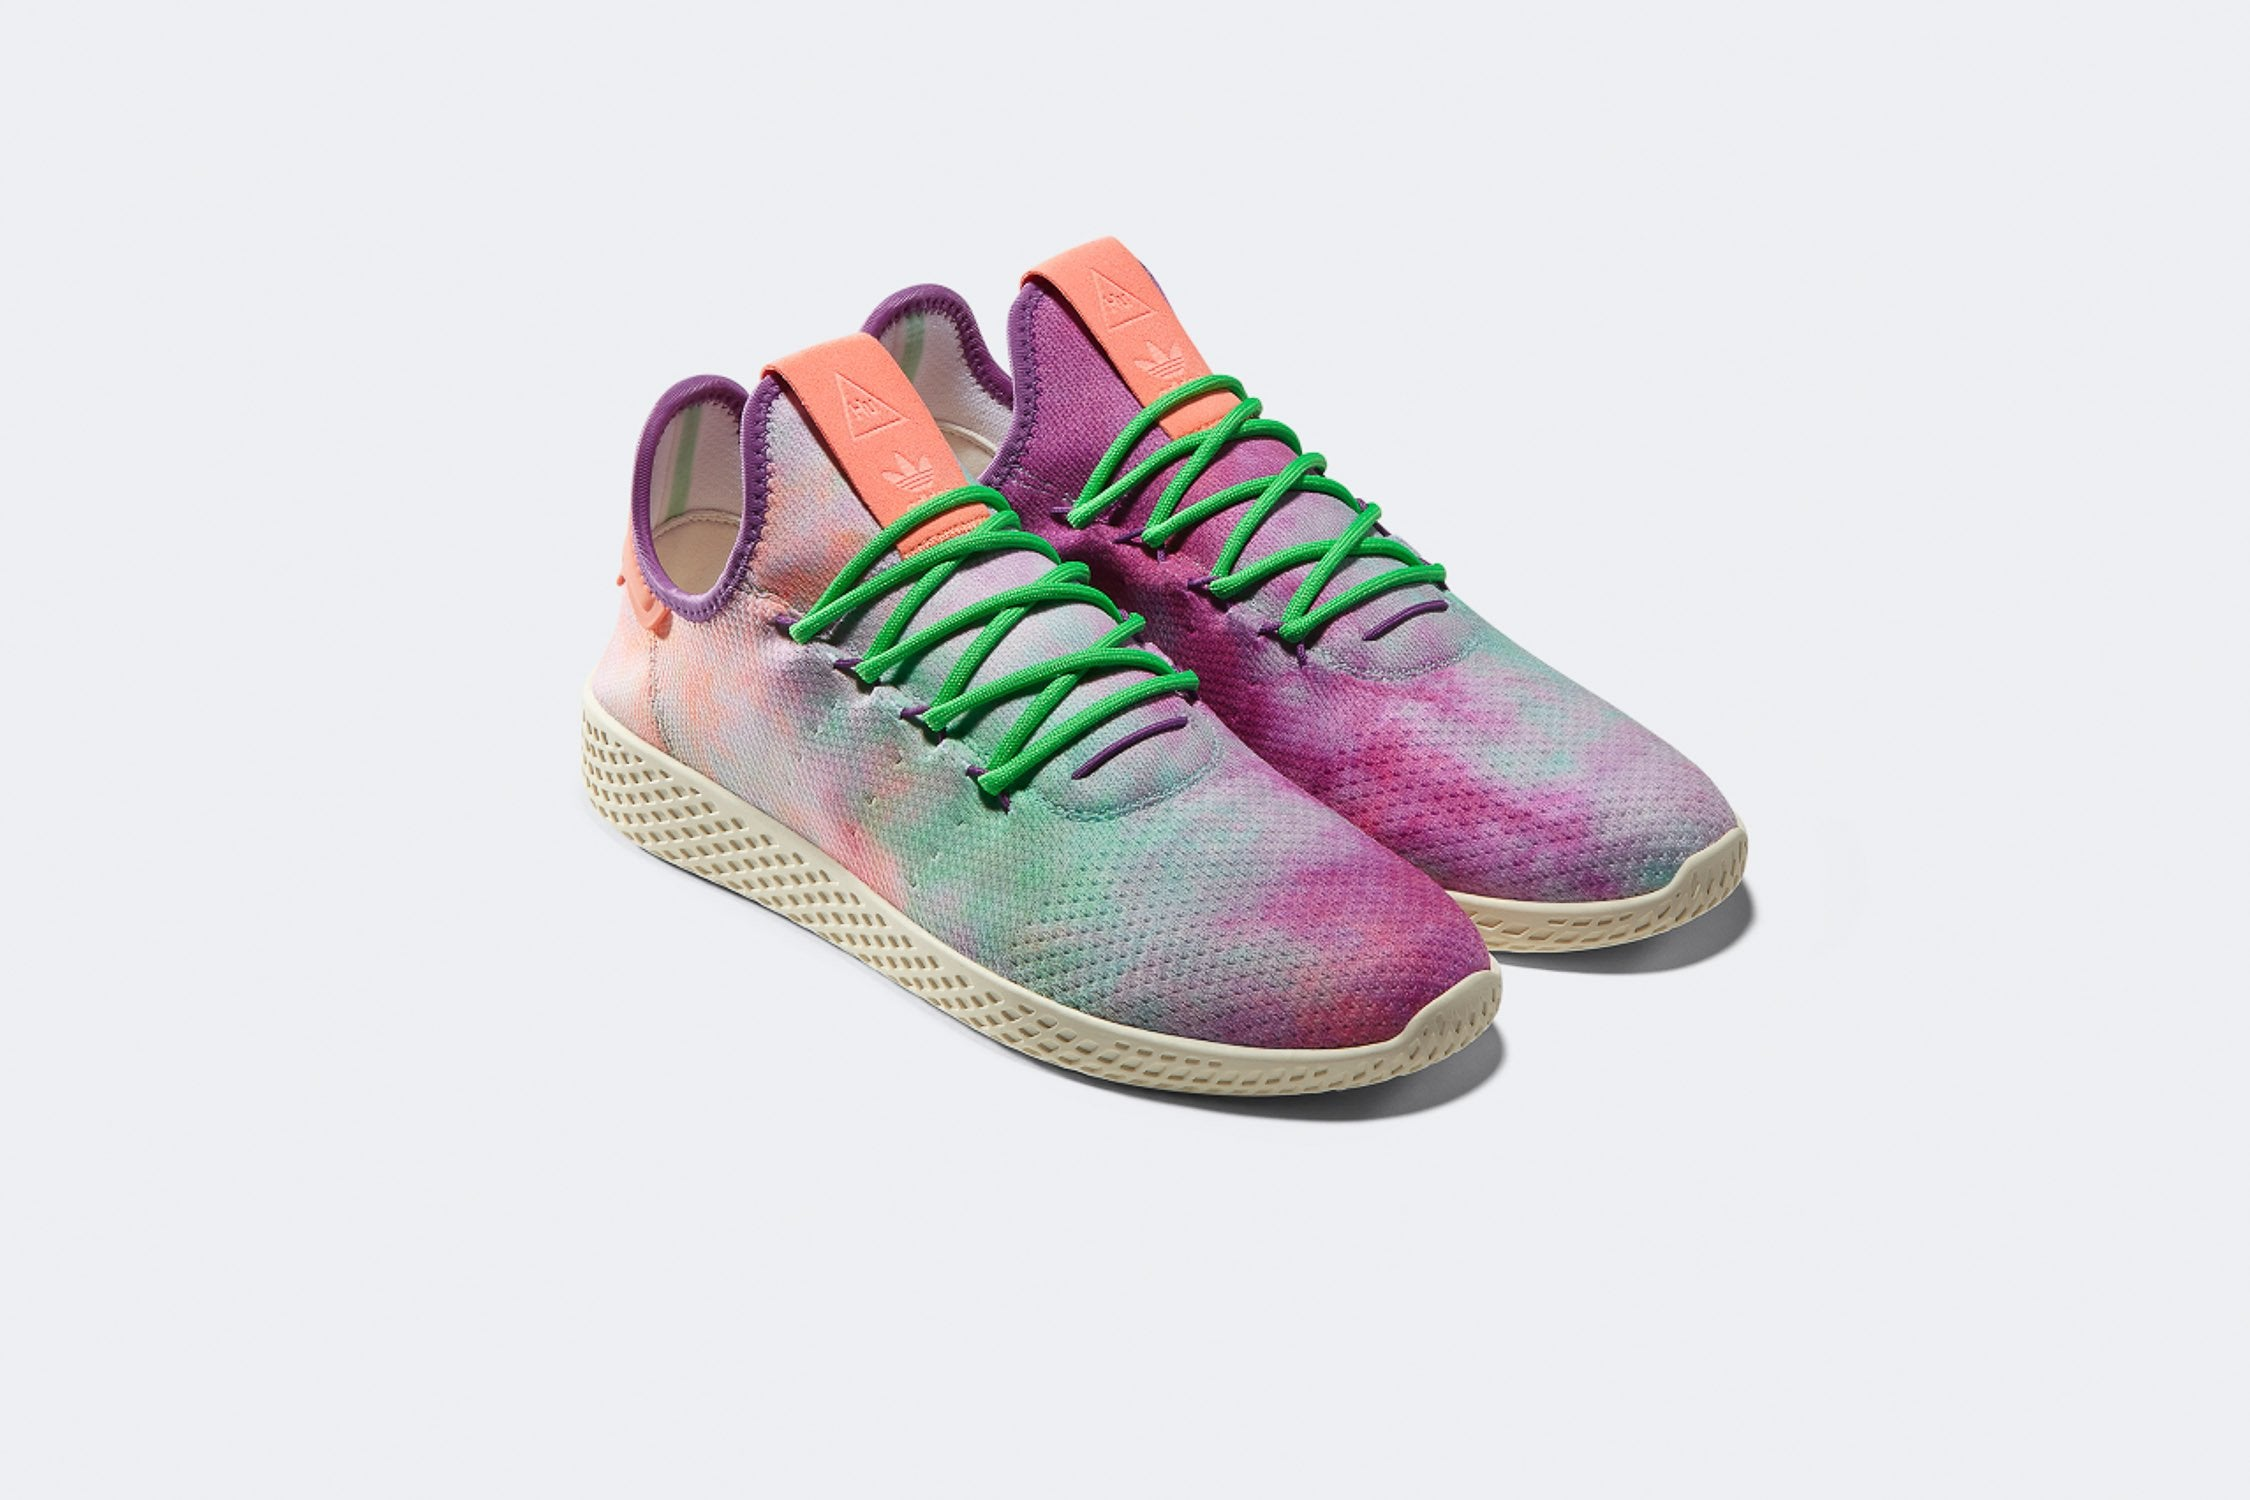 Pharrell Williams X adidas Tennis HU Holi - Chalk Coral/Supplier Colour #AC7366-Preorder Item-Navy Selected Shop